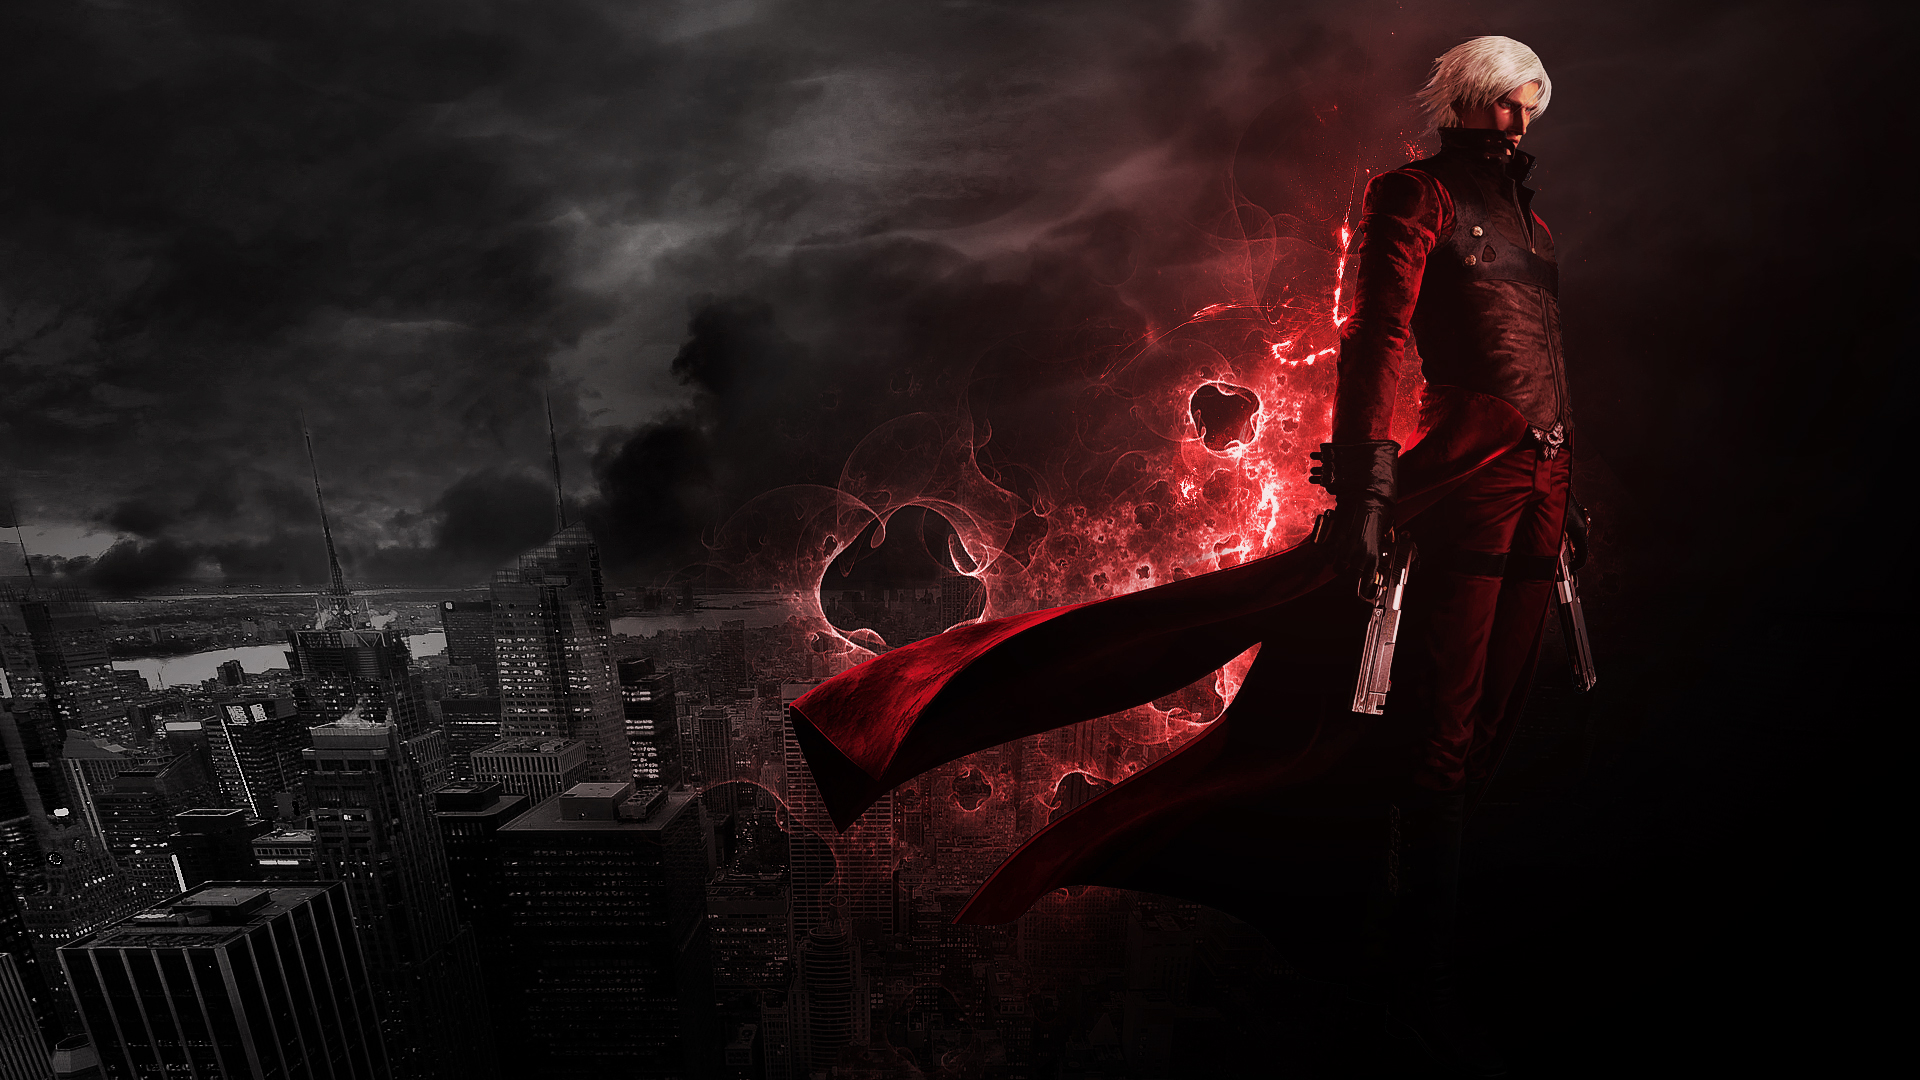 FREE WALLPAPERS   HD WALLPAPERS   DESKTOP WALLPAPERS Devil May Cry 2 1920x1080